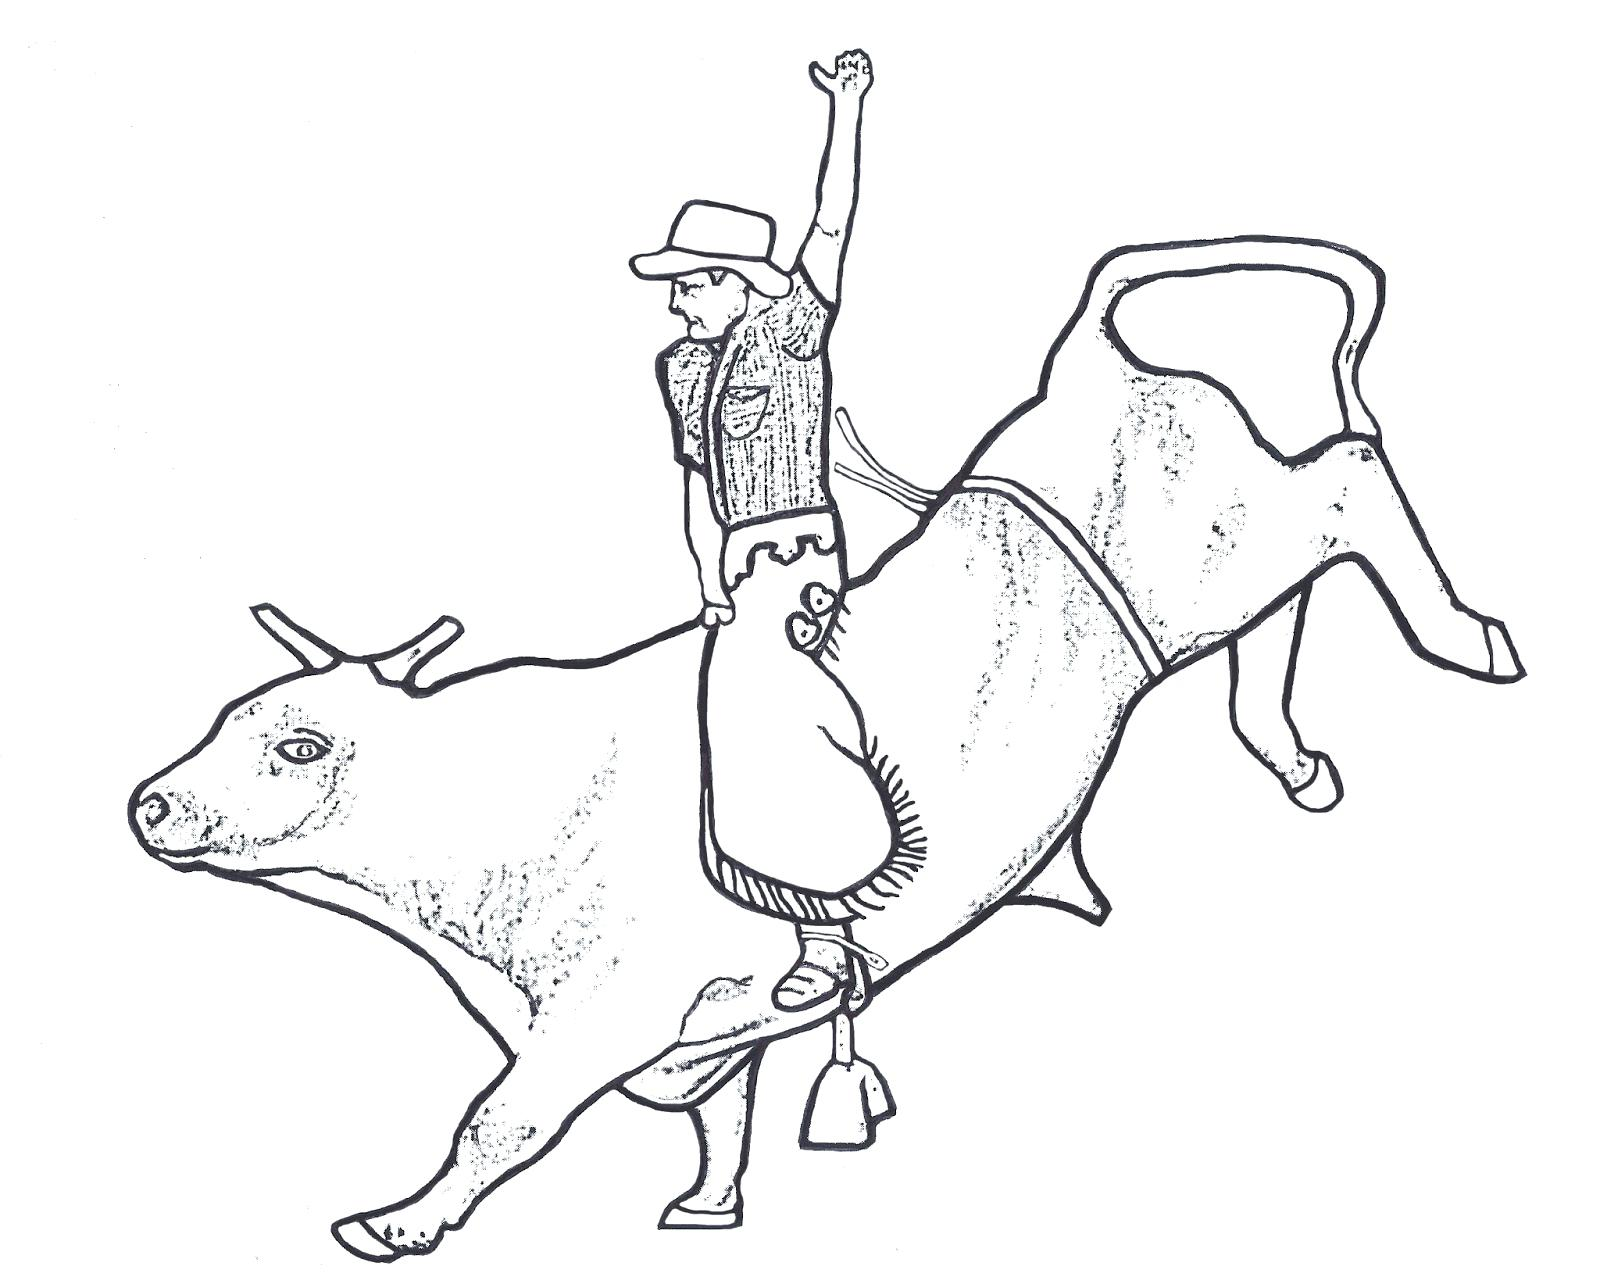 1600x1284 Coloring Pages For Boys Bull Riding Mason Desing Of Treble Clef